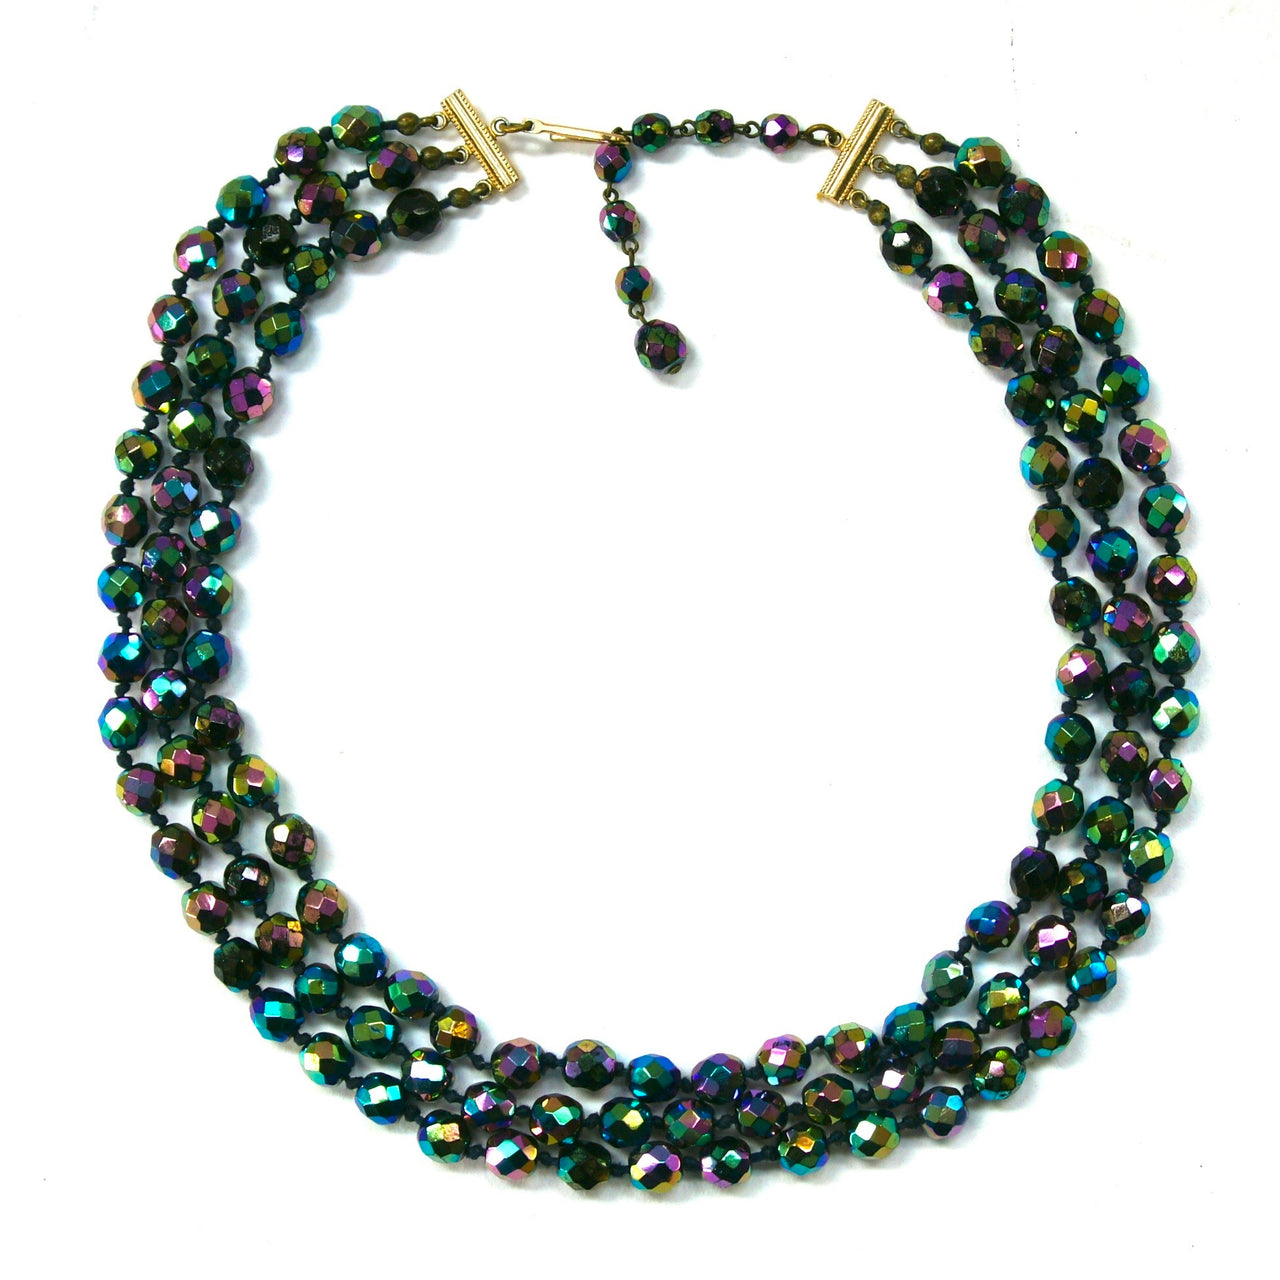 1960s Vintage Carnival Glass Beads Necklace